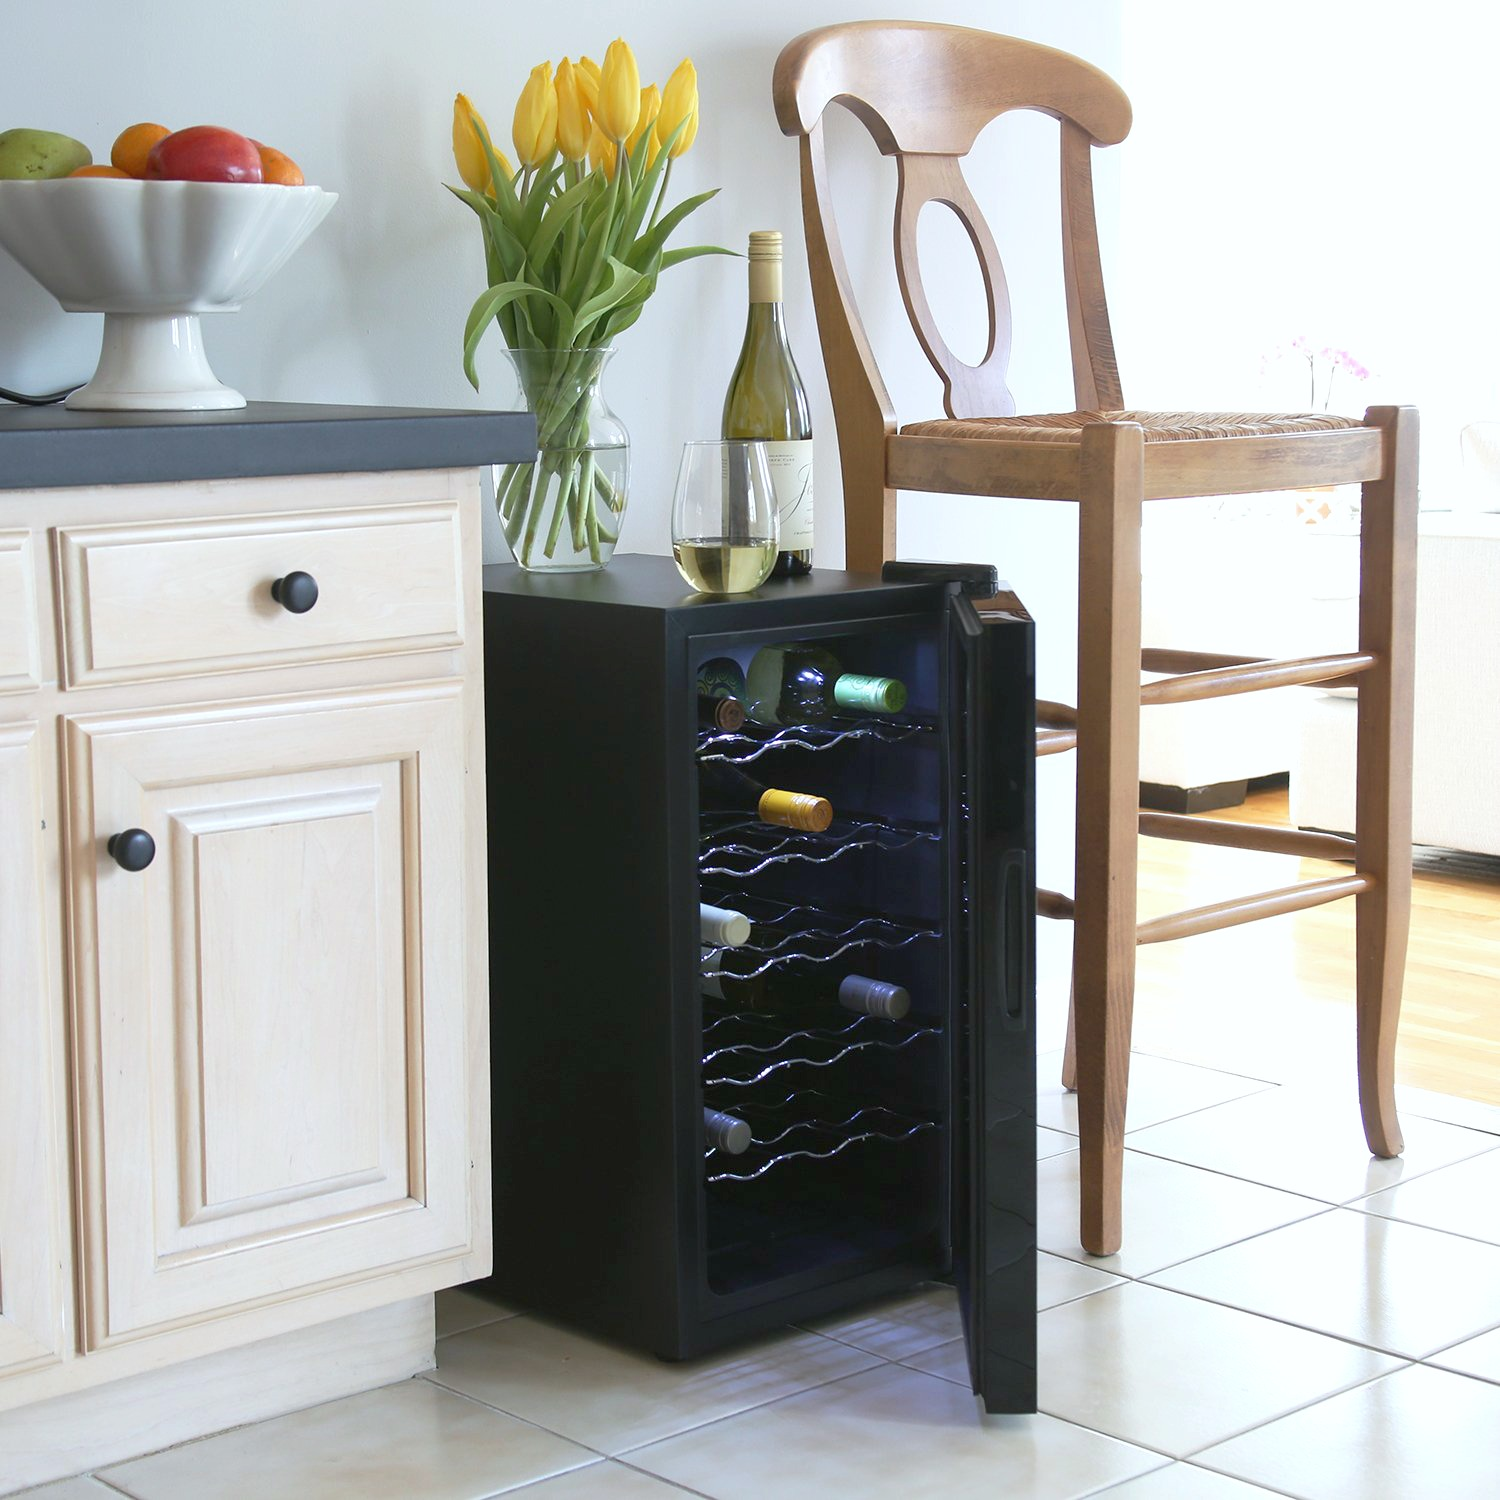 A small black wine cooler has its door ajar and next to a chair and kitchen cabinet.